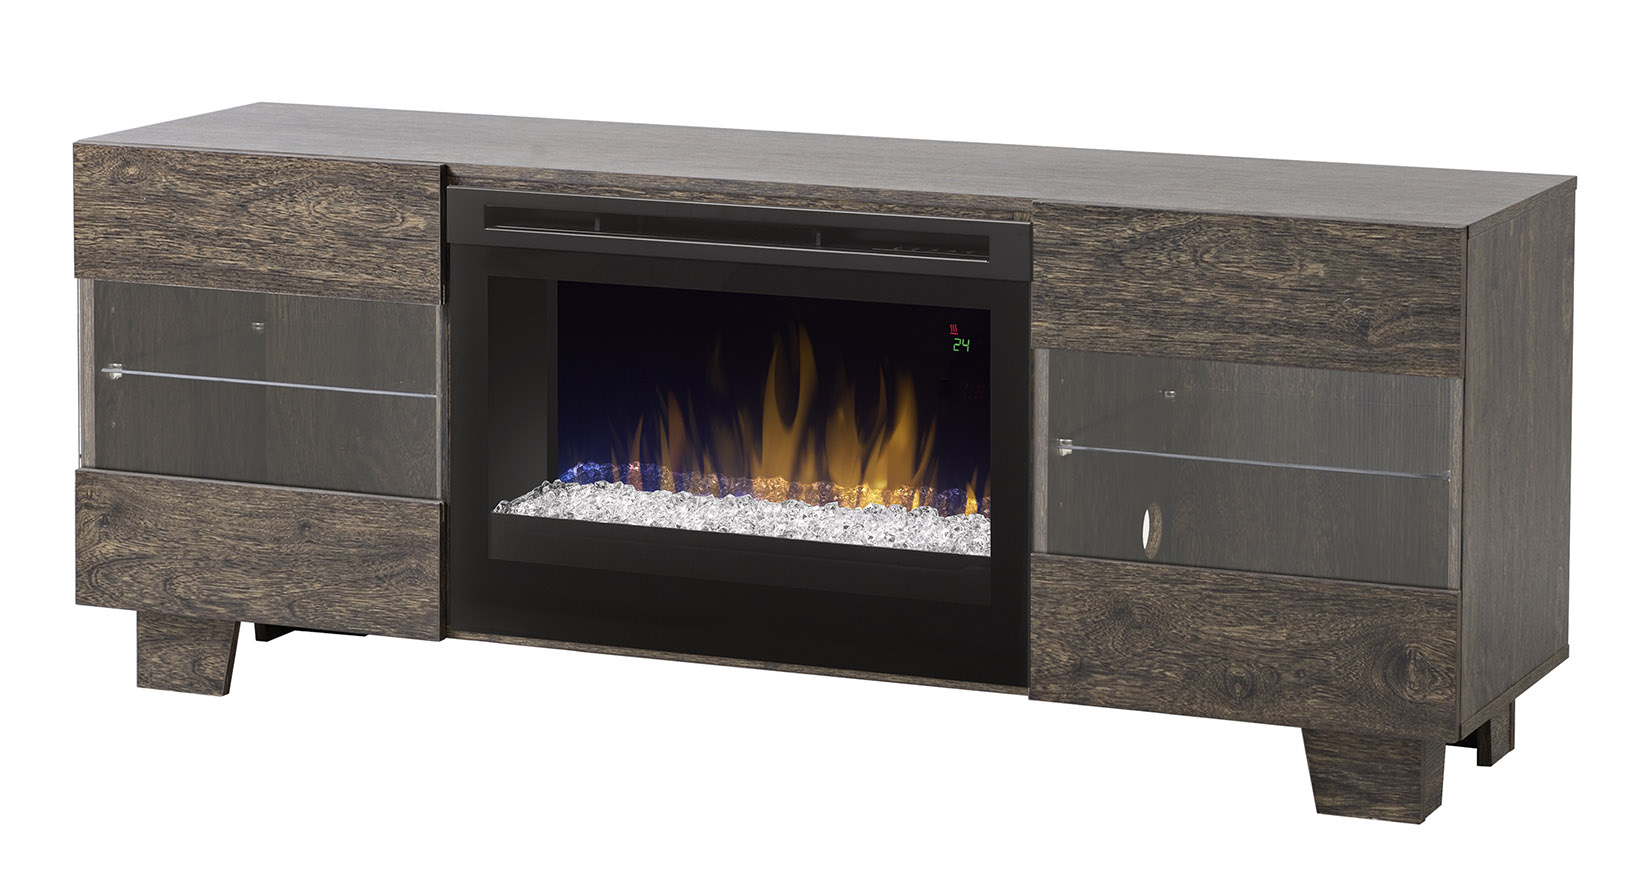 Dimplex Max Media Console Electric Fireplace Gds25ld 1651cw